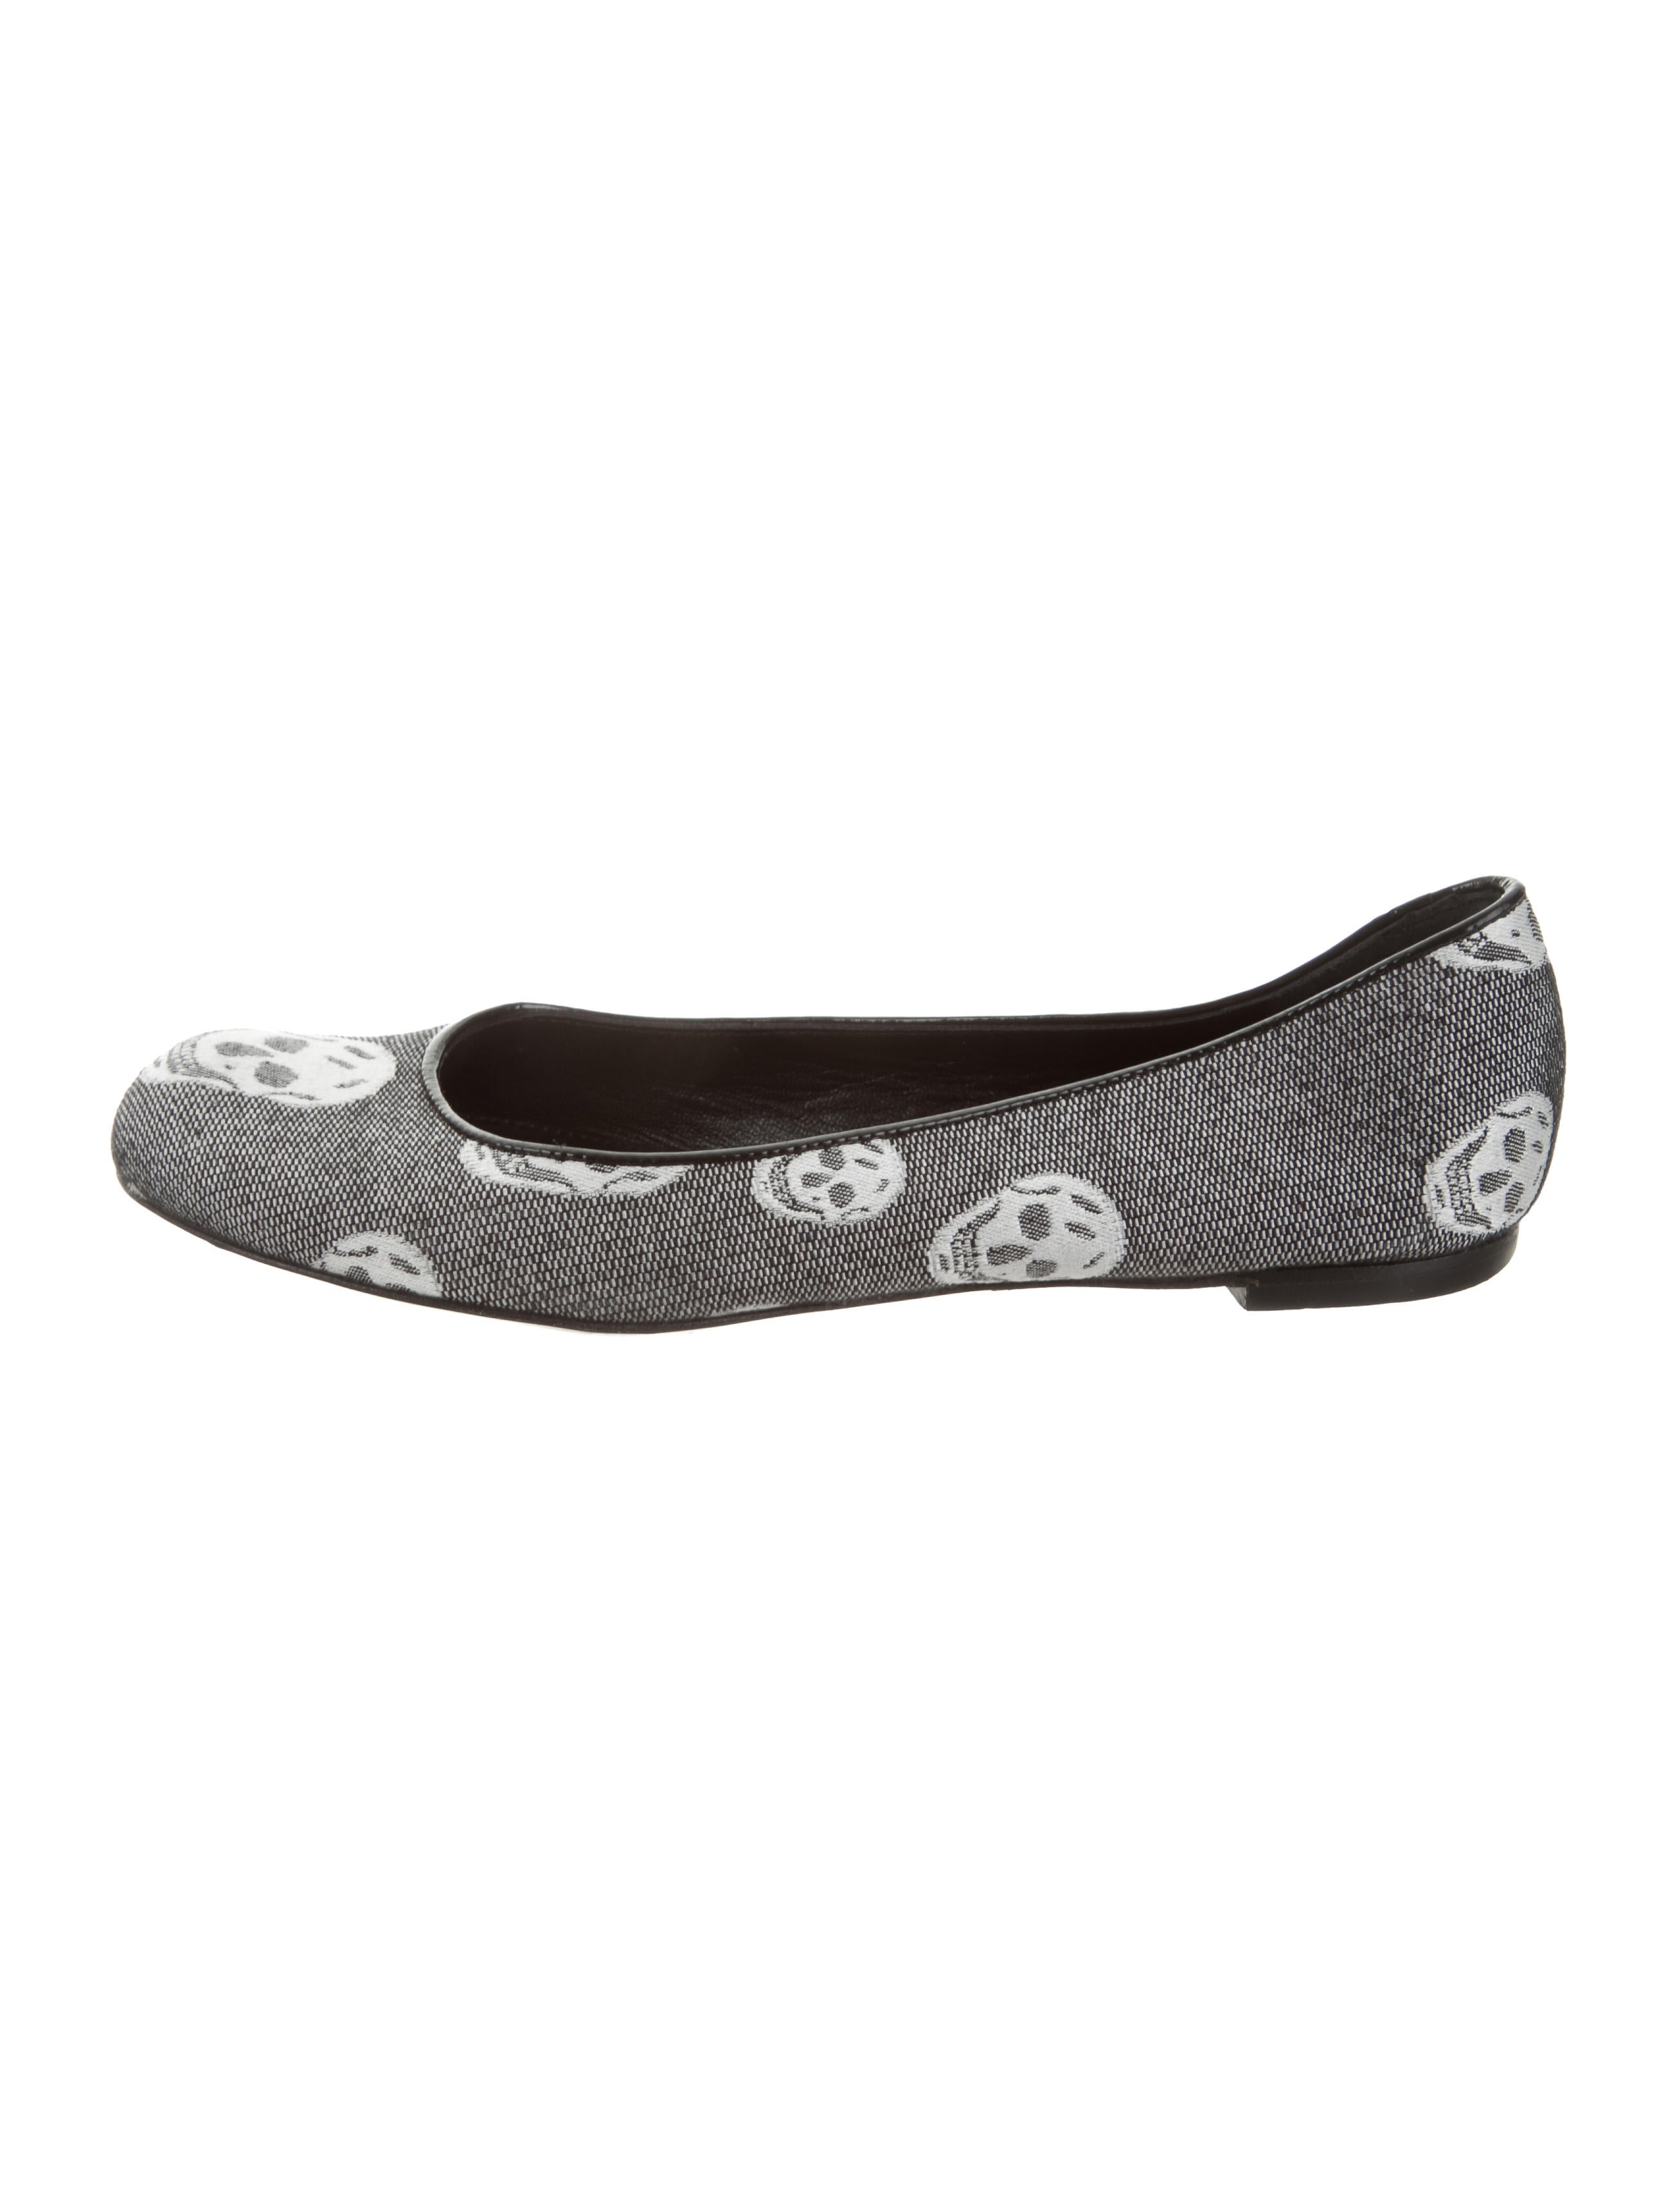 outlet cheap price buy cheap sast Alexander McQueen Skull Print Round-Toe Flats clearance low shipping fee discount release dates outlet cost ERj9Wlsa